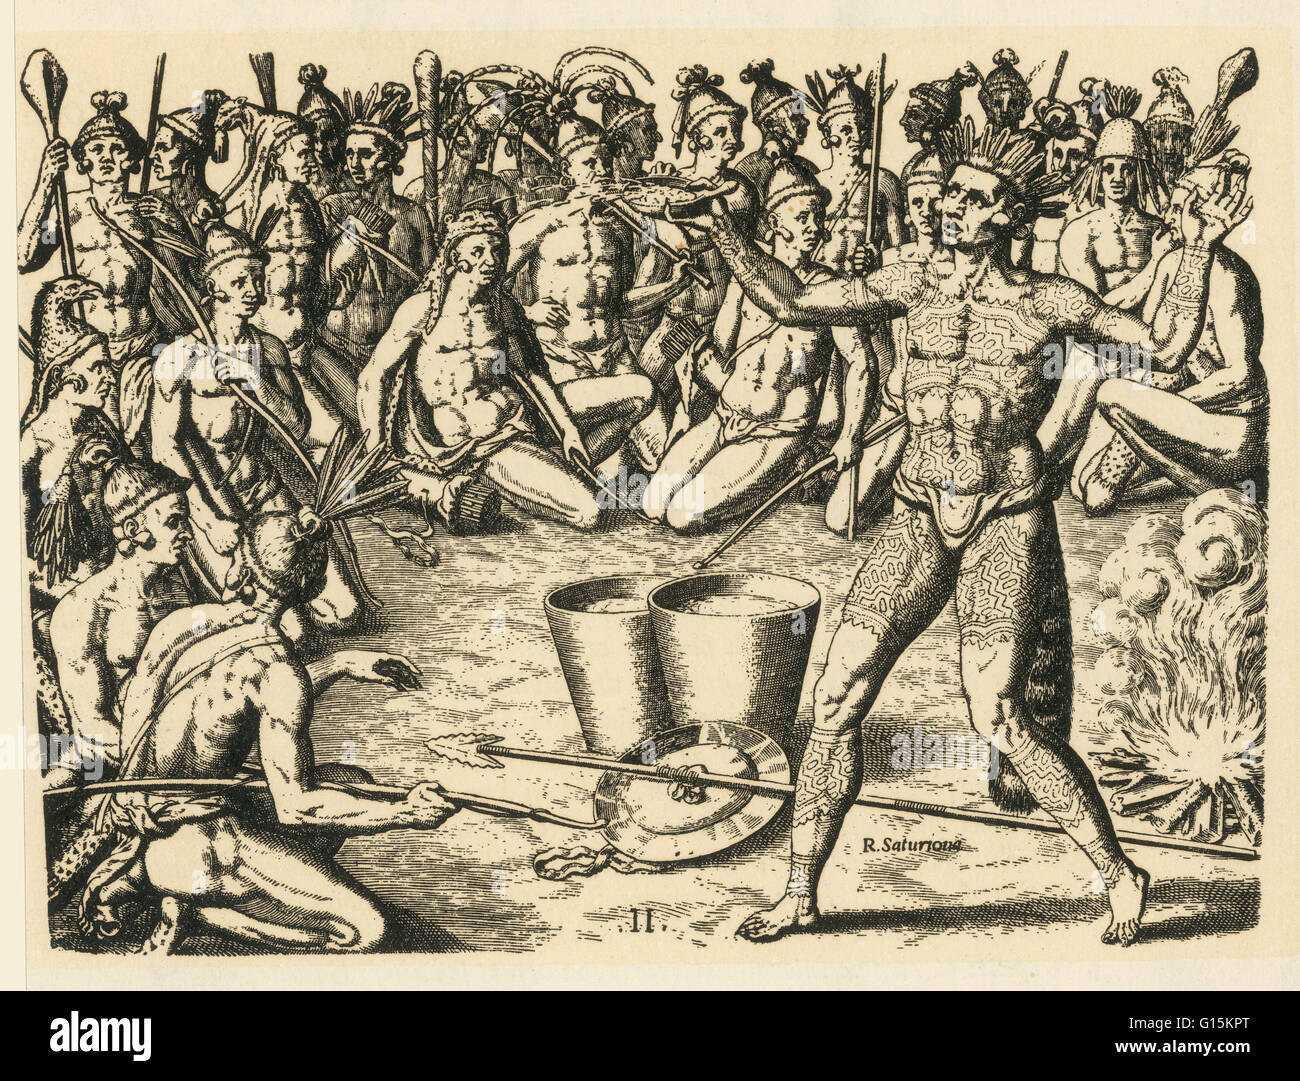 Late 16th-century engraving by Theodor de Bry, after a watercolor by Jacques le Moyne, titled 'War Dance.' - Stock Image